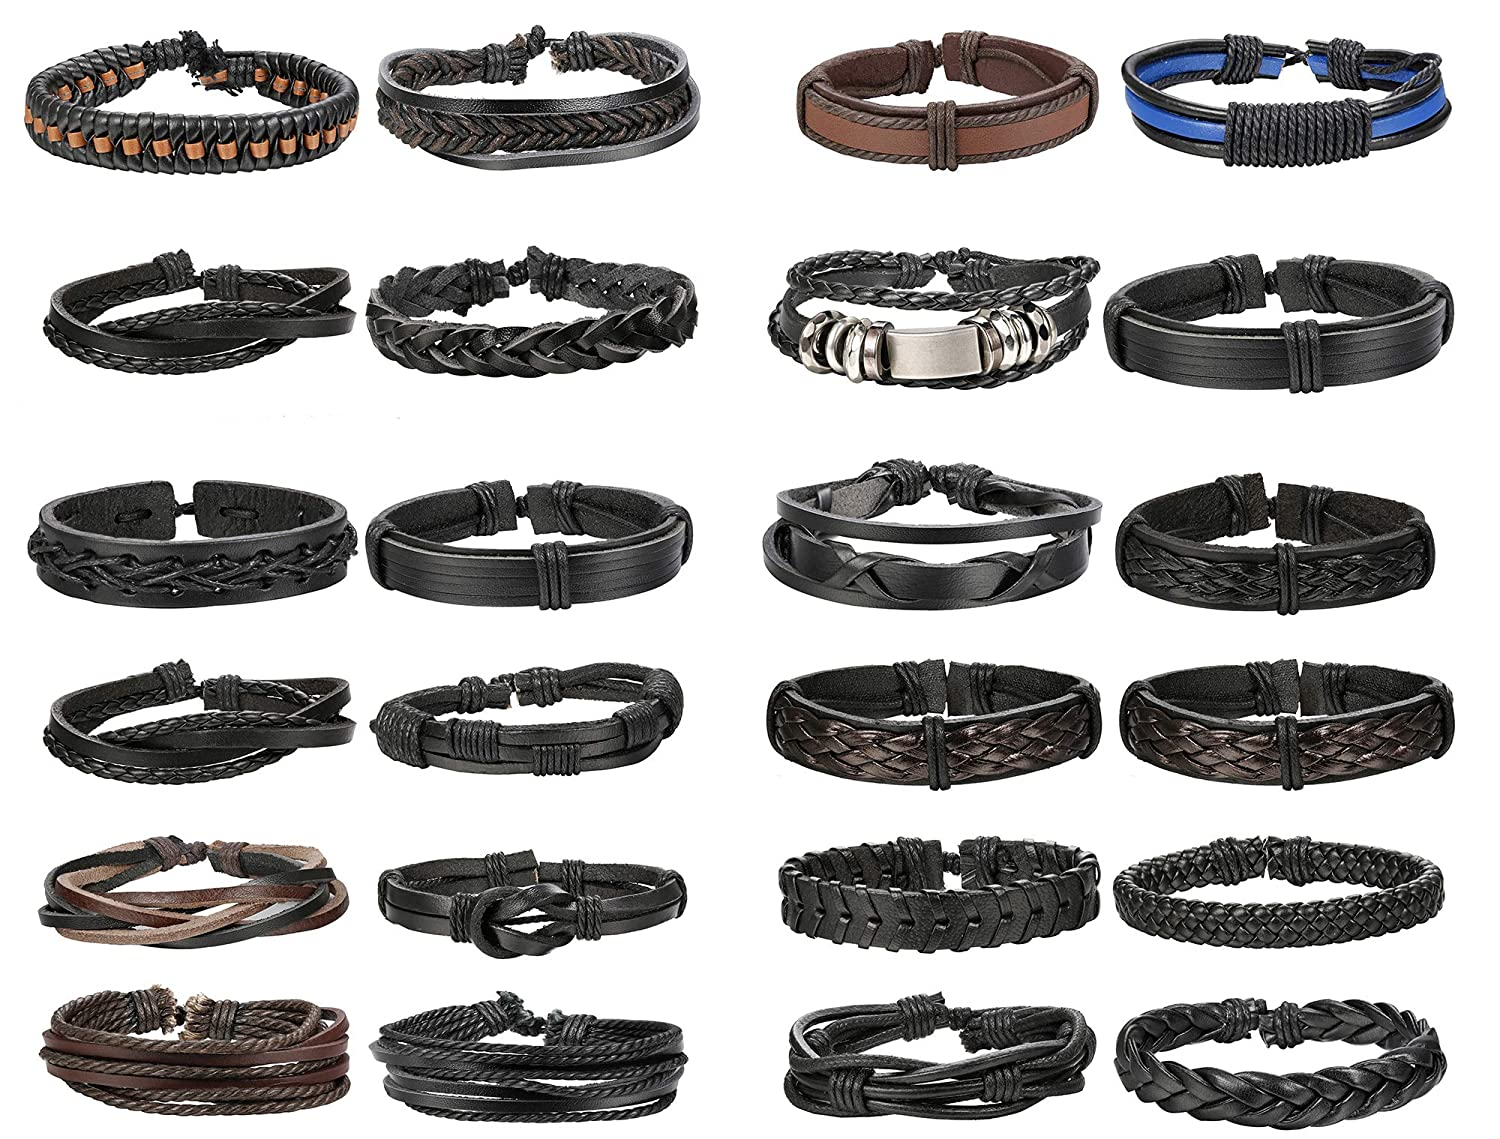 Finrezio 24 PCS Black Braided Leather Bracelets Set for Men Wrap Cuff Bracelet Adjustable UK_B07FTNM4G3